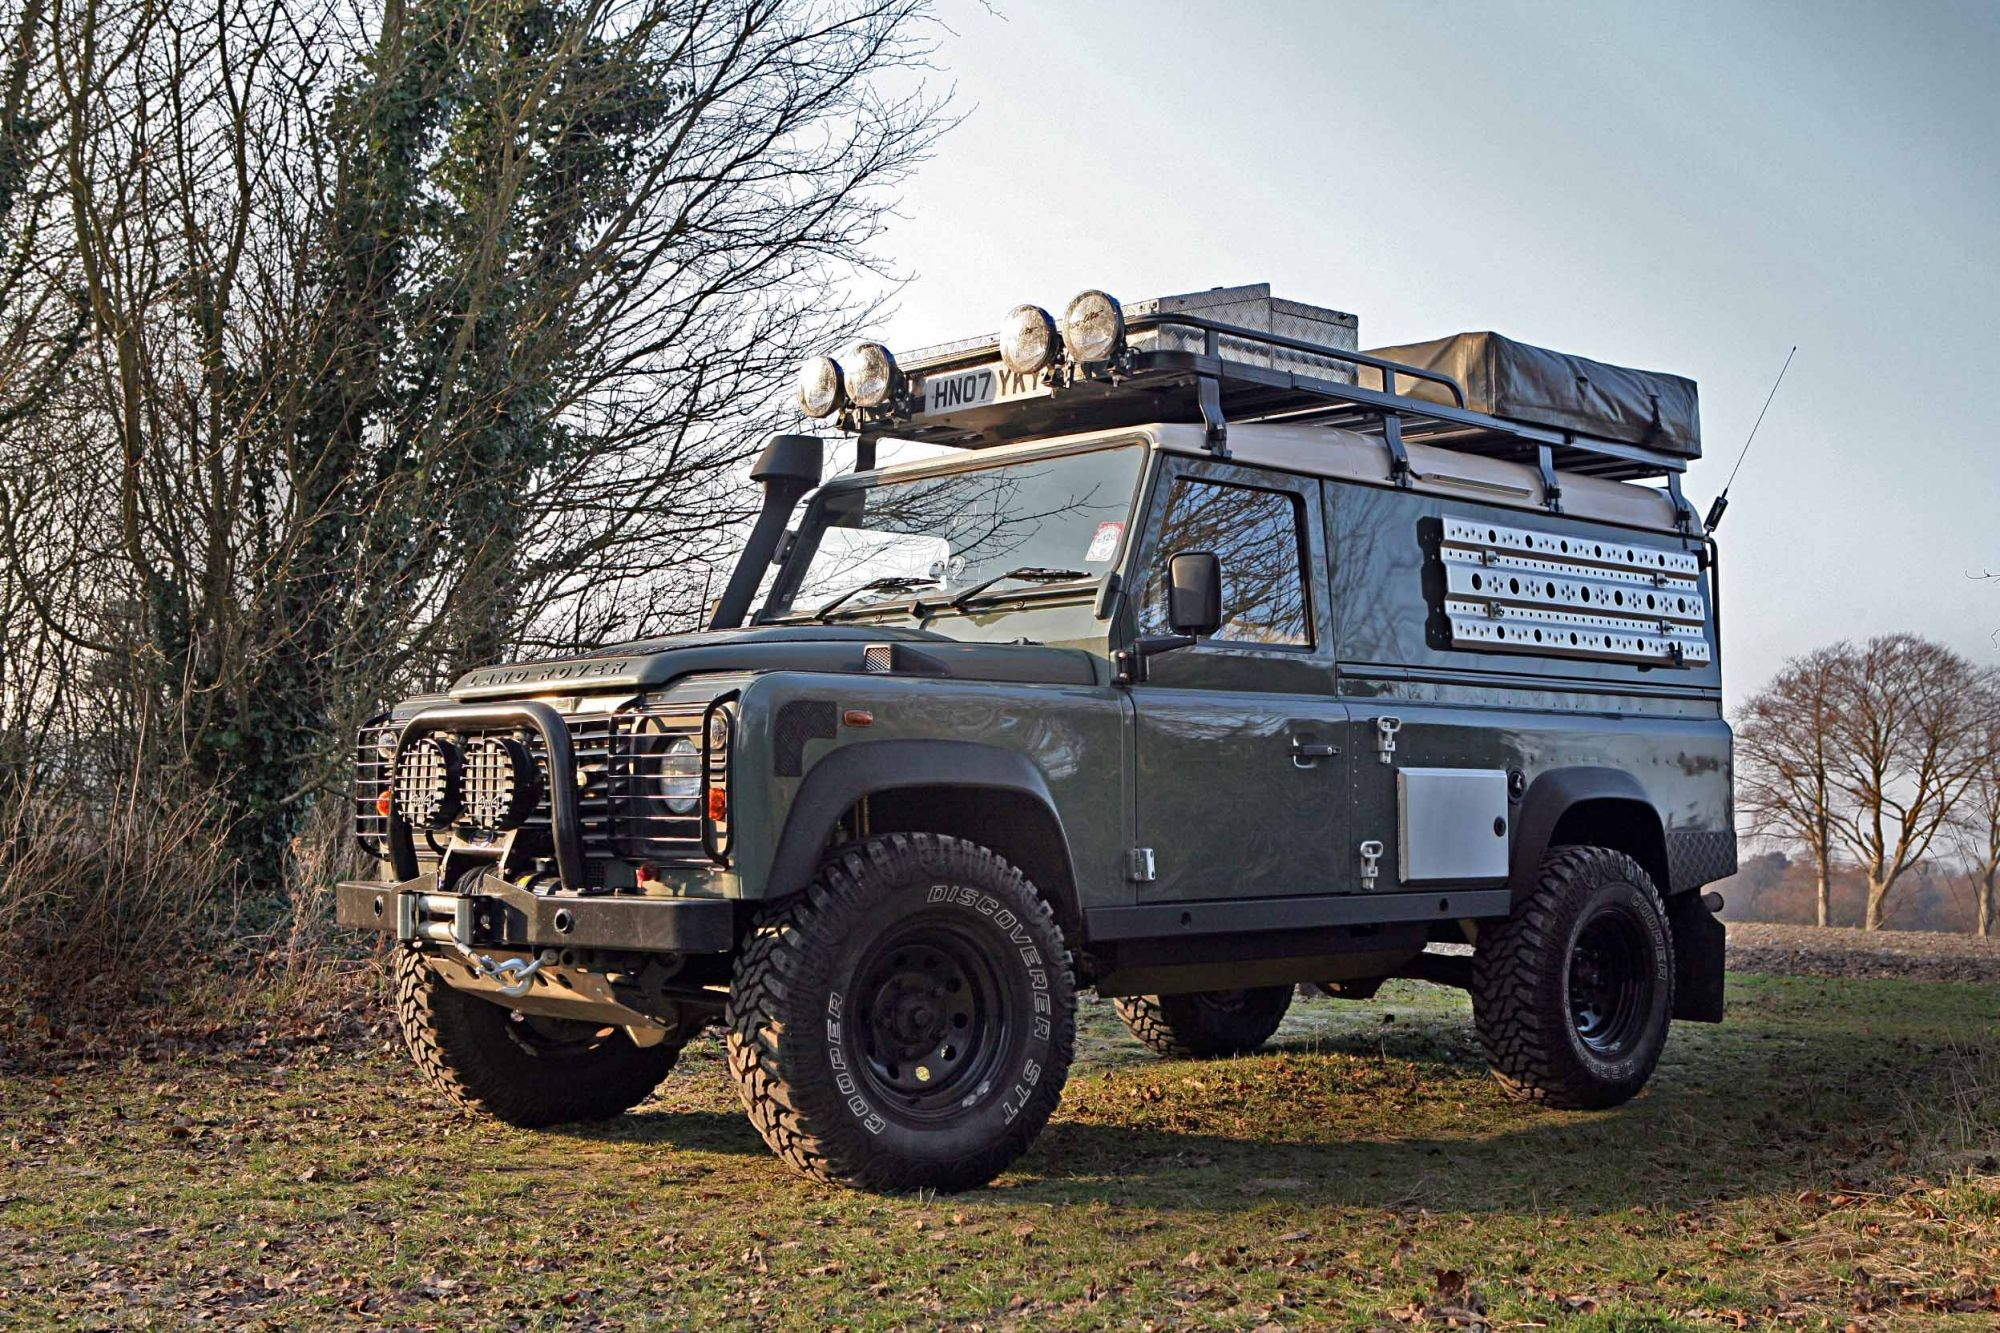 Land Rover Defender 110 Hardtop expedition/overland. This